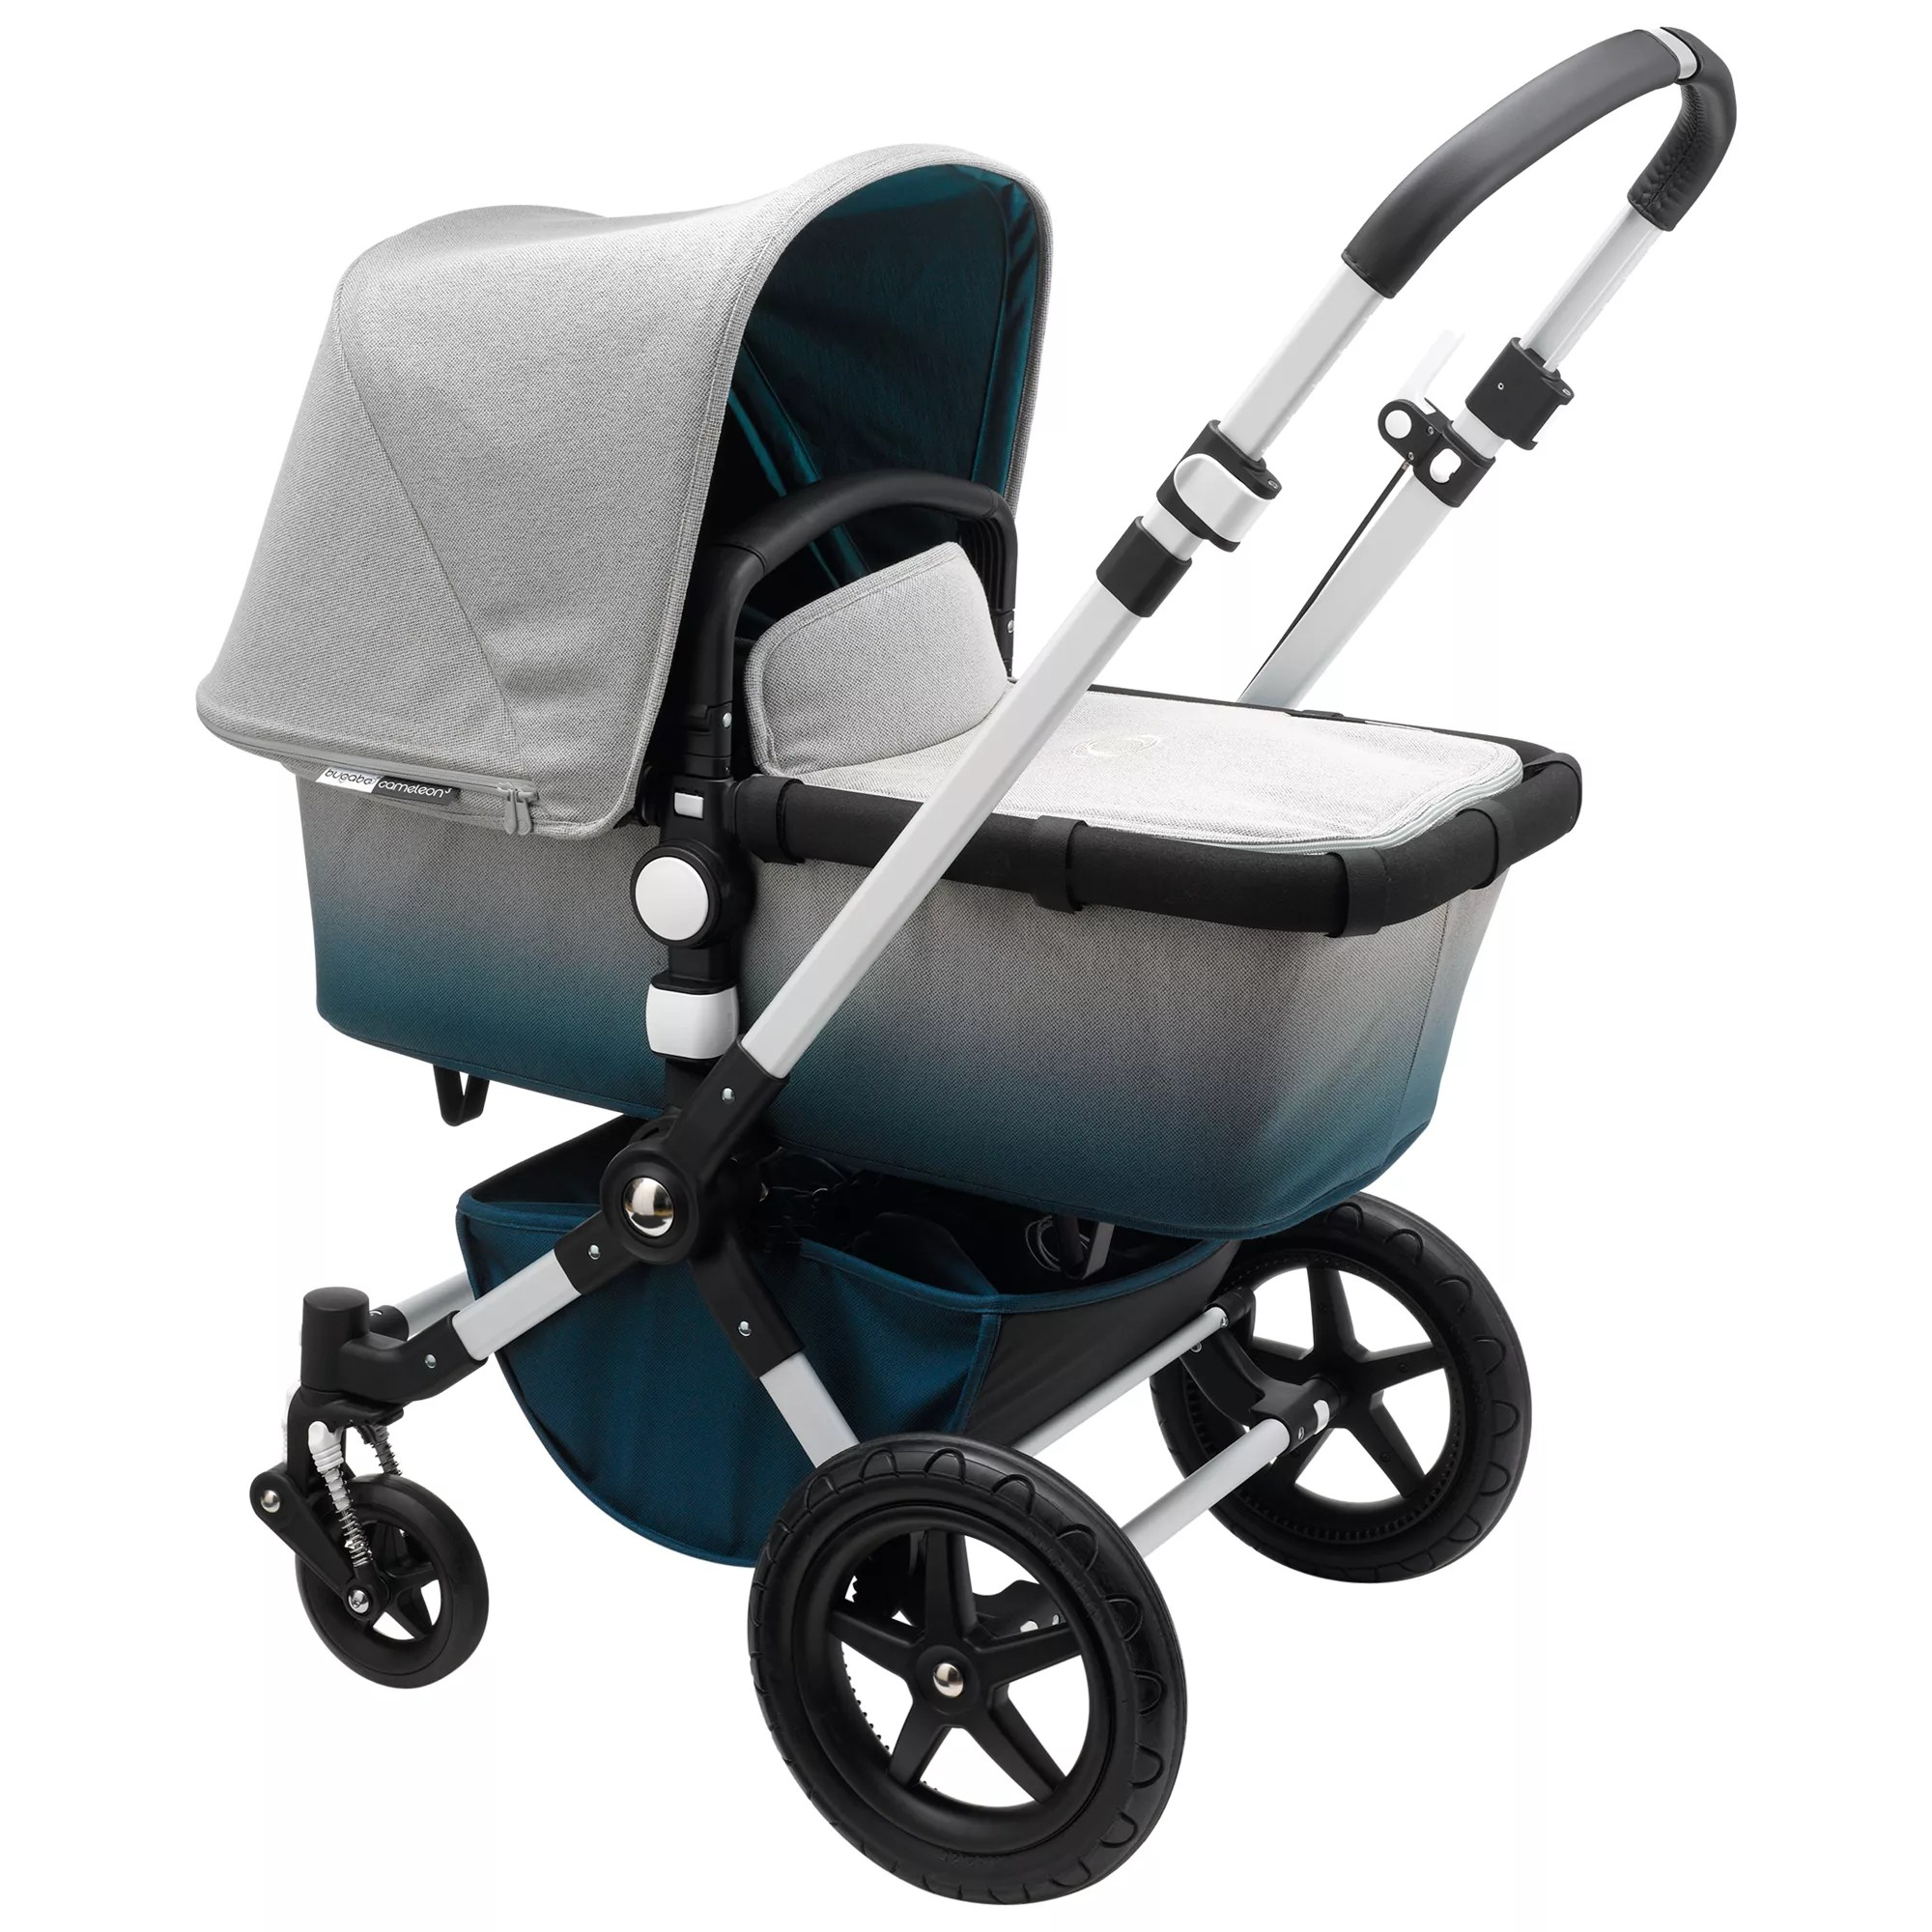 Bugaboo Cameleon 3 Maximum Weight Bugaboo Cameleon 3 Elements Complete Pushchair Grey